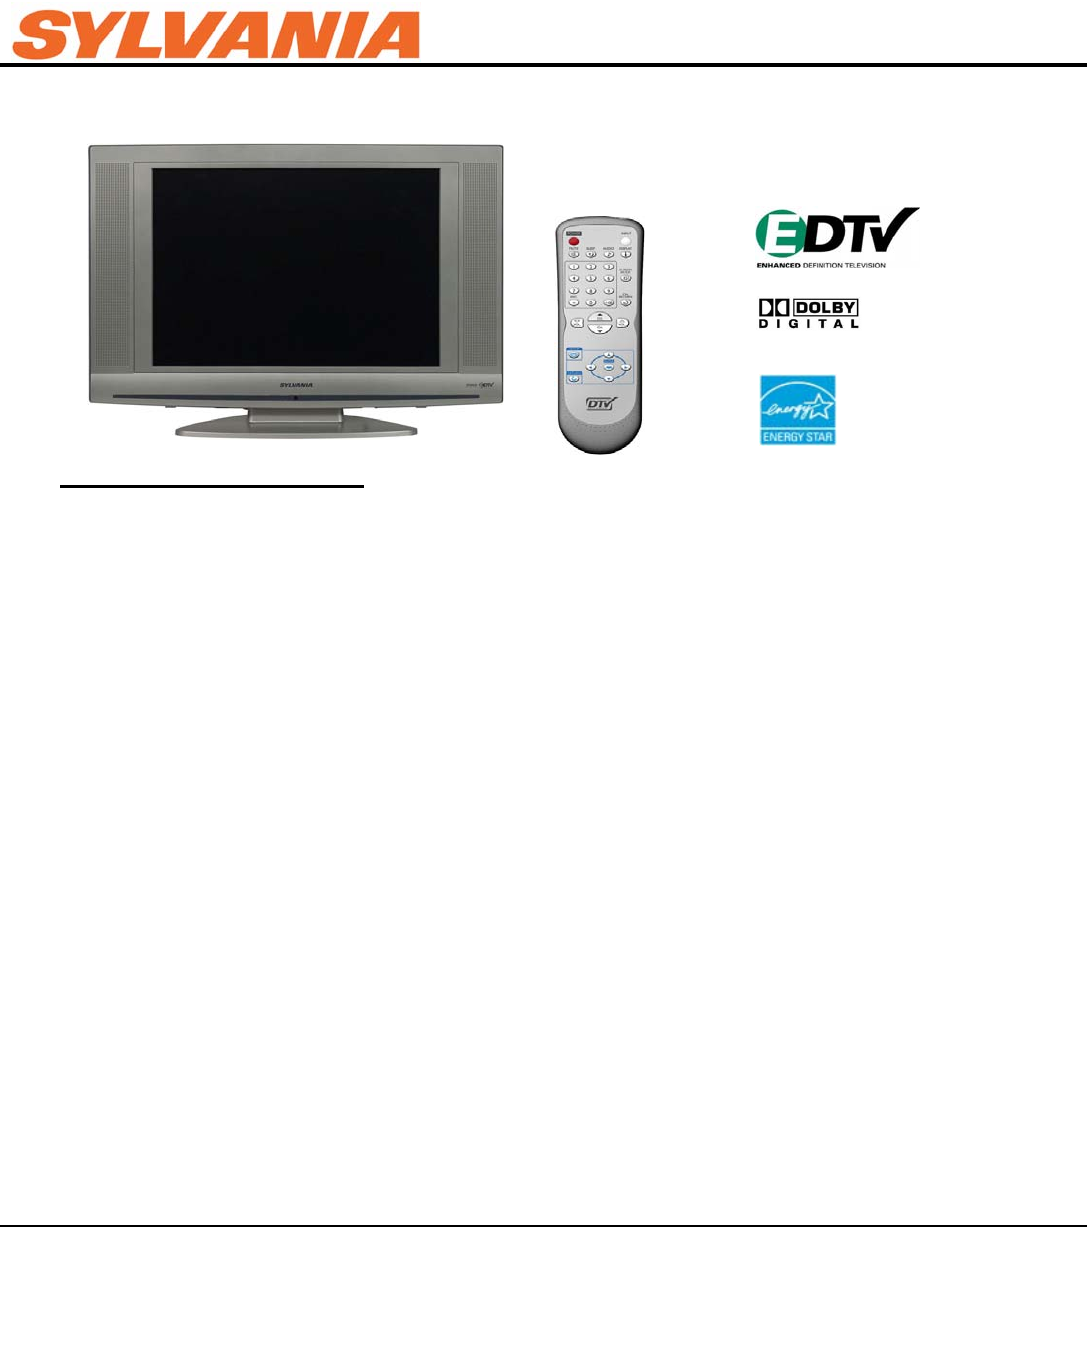 sylvania flat panel television lc200sl8 user guide manualsonline com rh tv manualsonline com Sylvania Telephone Help Wanted Sylvania Telephone Help Wanted